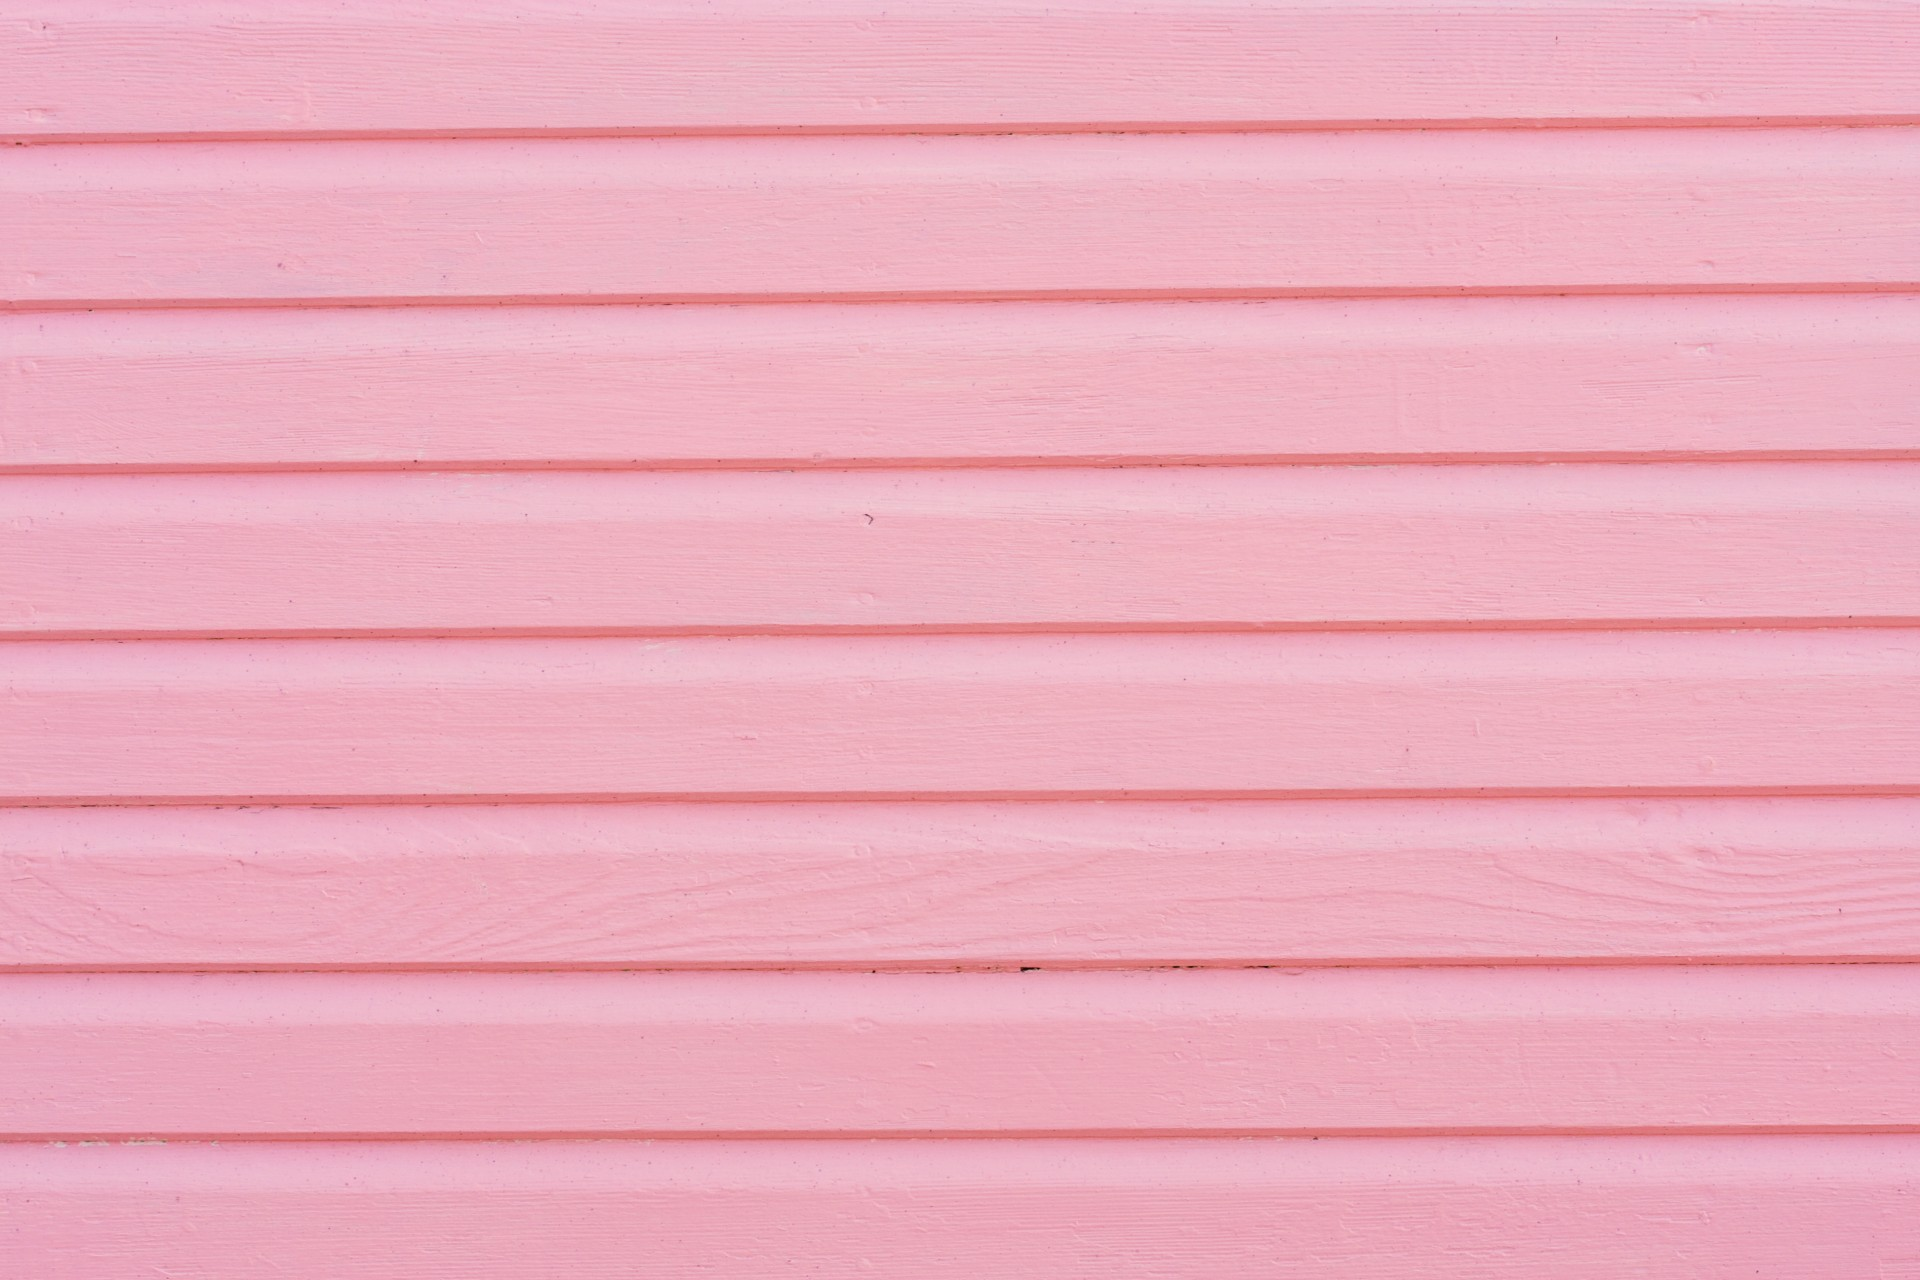 Baby Pink Iphone Wallpaper Wood Texture Background Pink Free Stock Photo Public